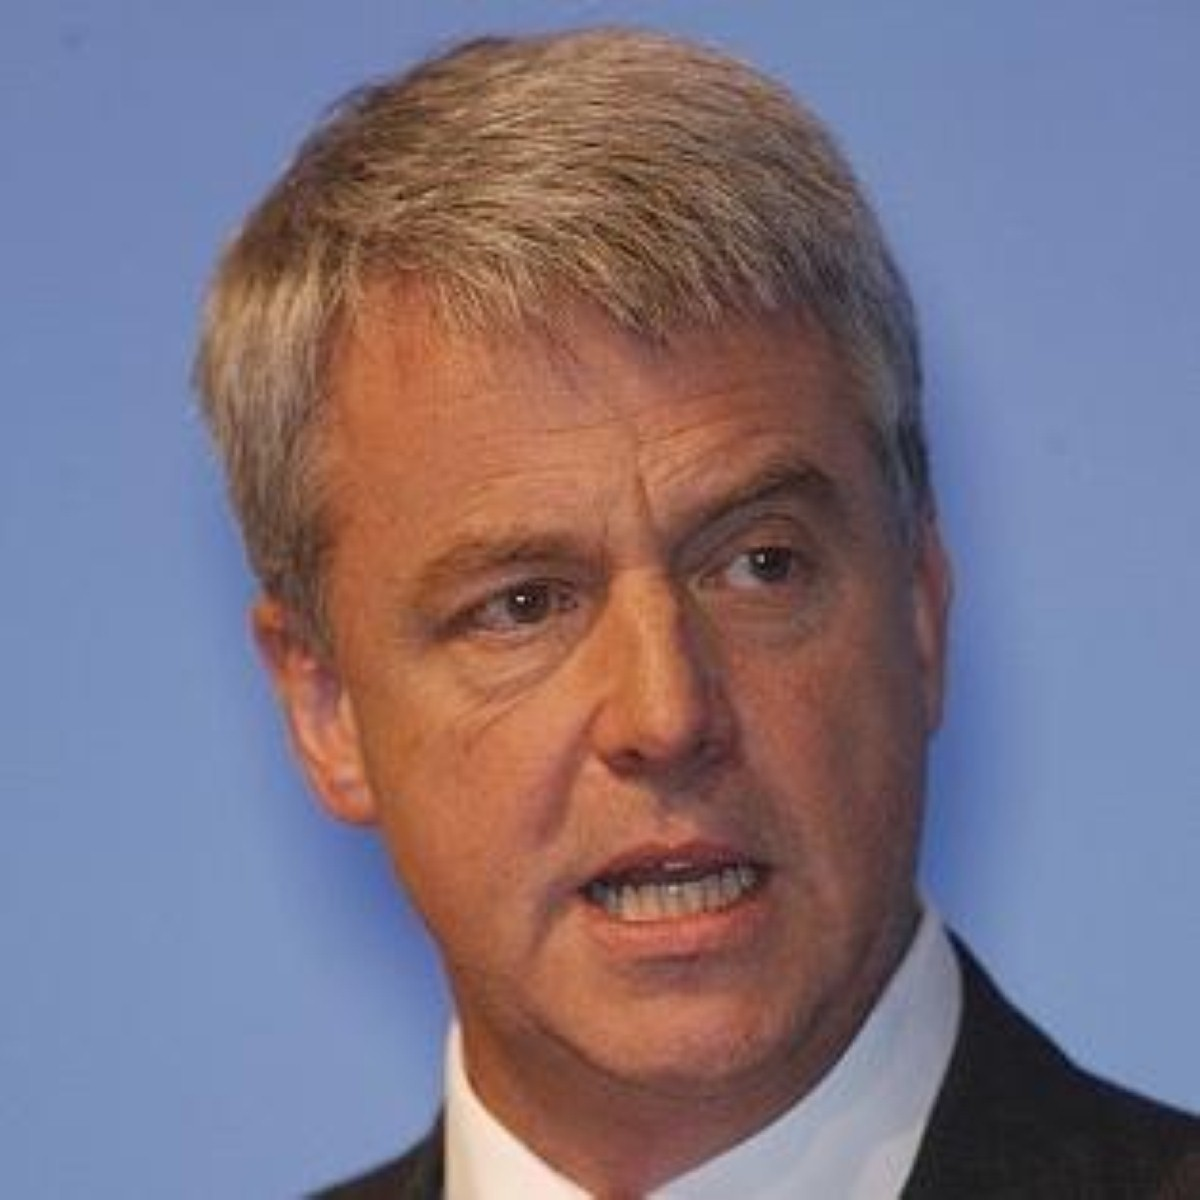 Lansley faces questions over civil servants' tax avoidance